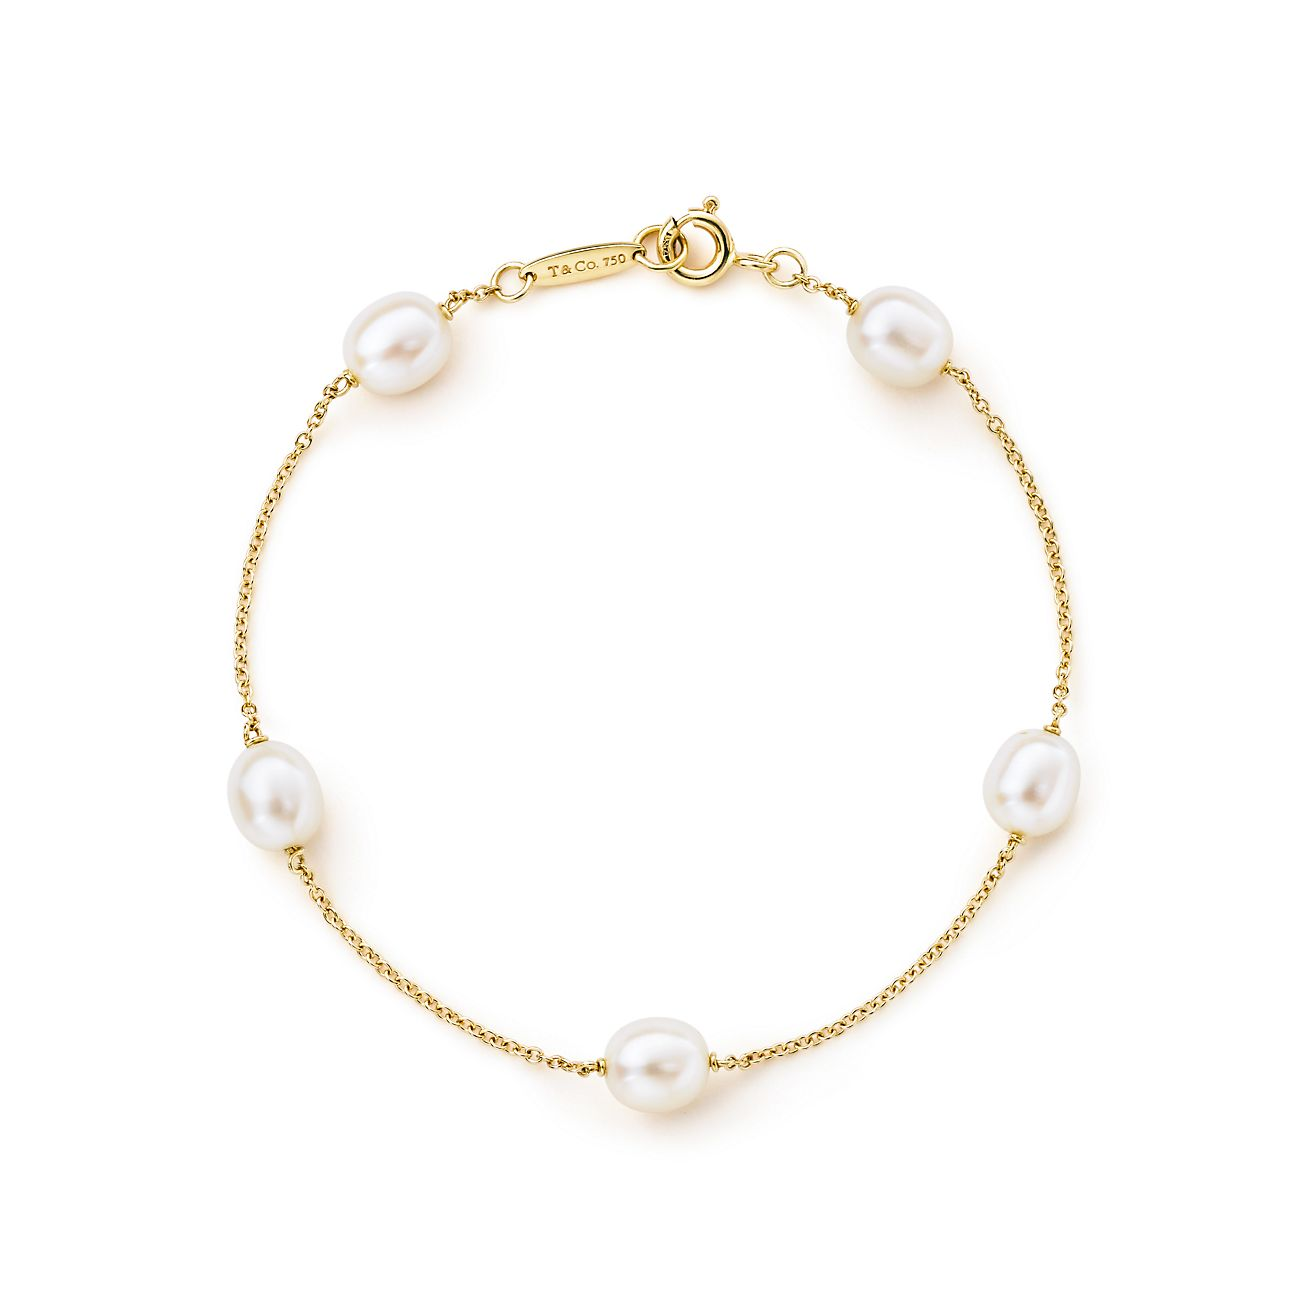 Elsa Peretti Pearls By The Yard Br Bracelet